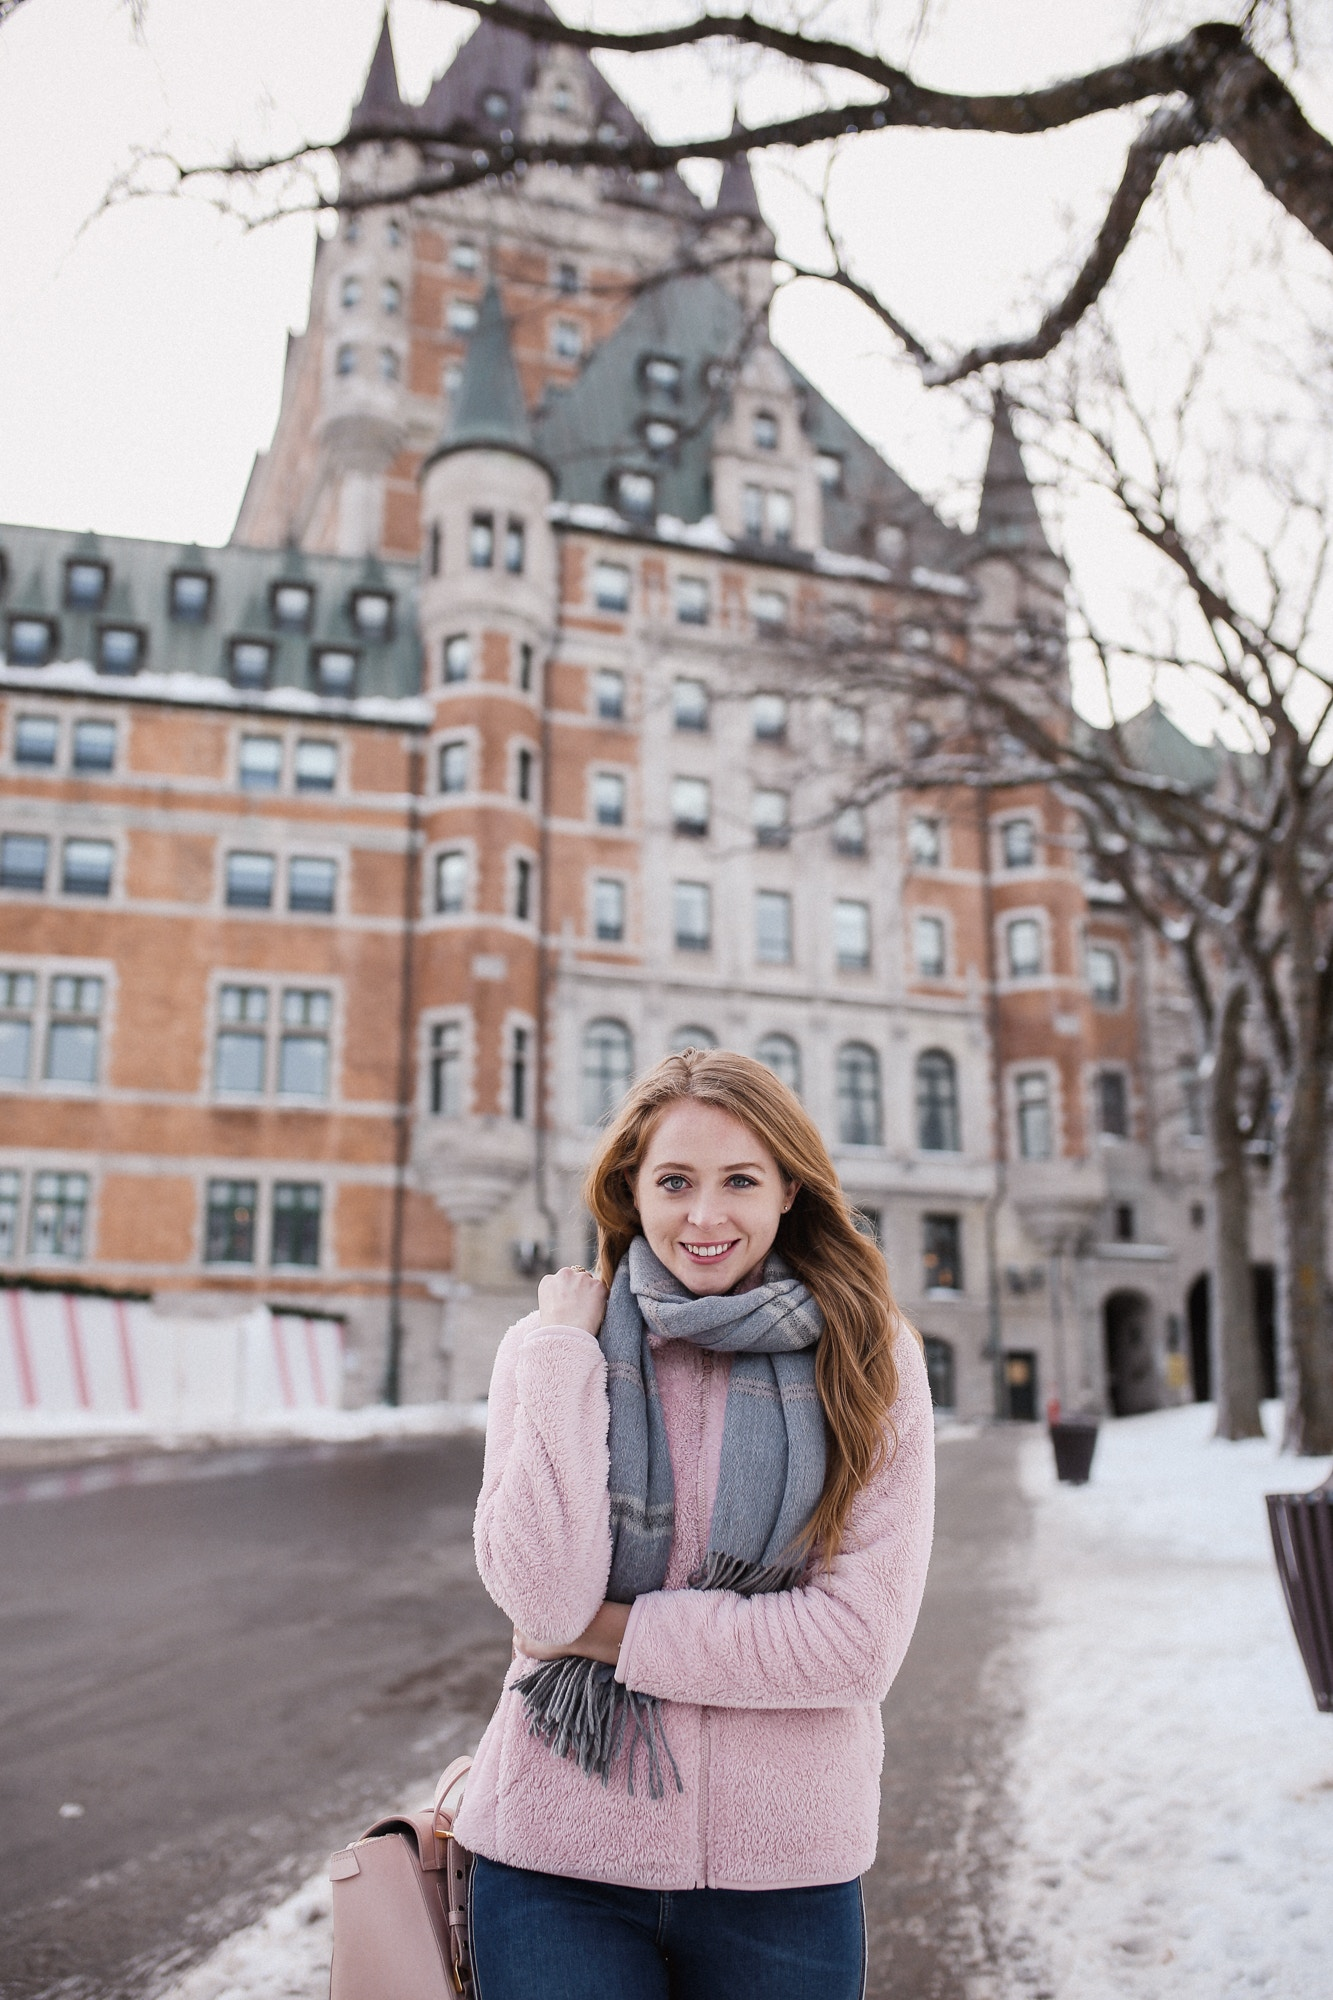 Of course, a visit to Chateau Frontenac is a must! Check out my top 10 things to do in Quebec City in a weekend in winter.